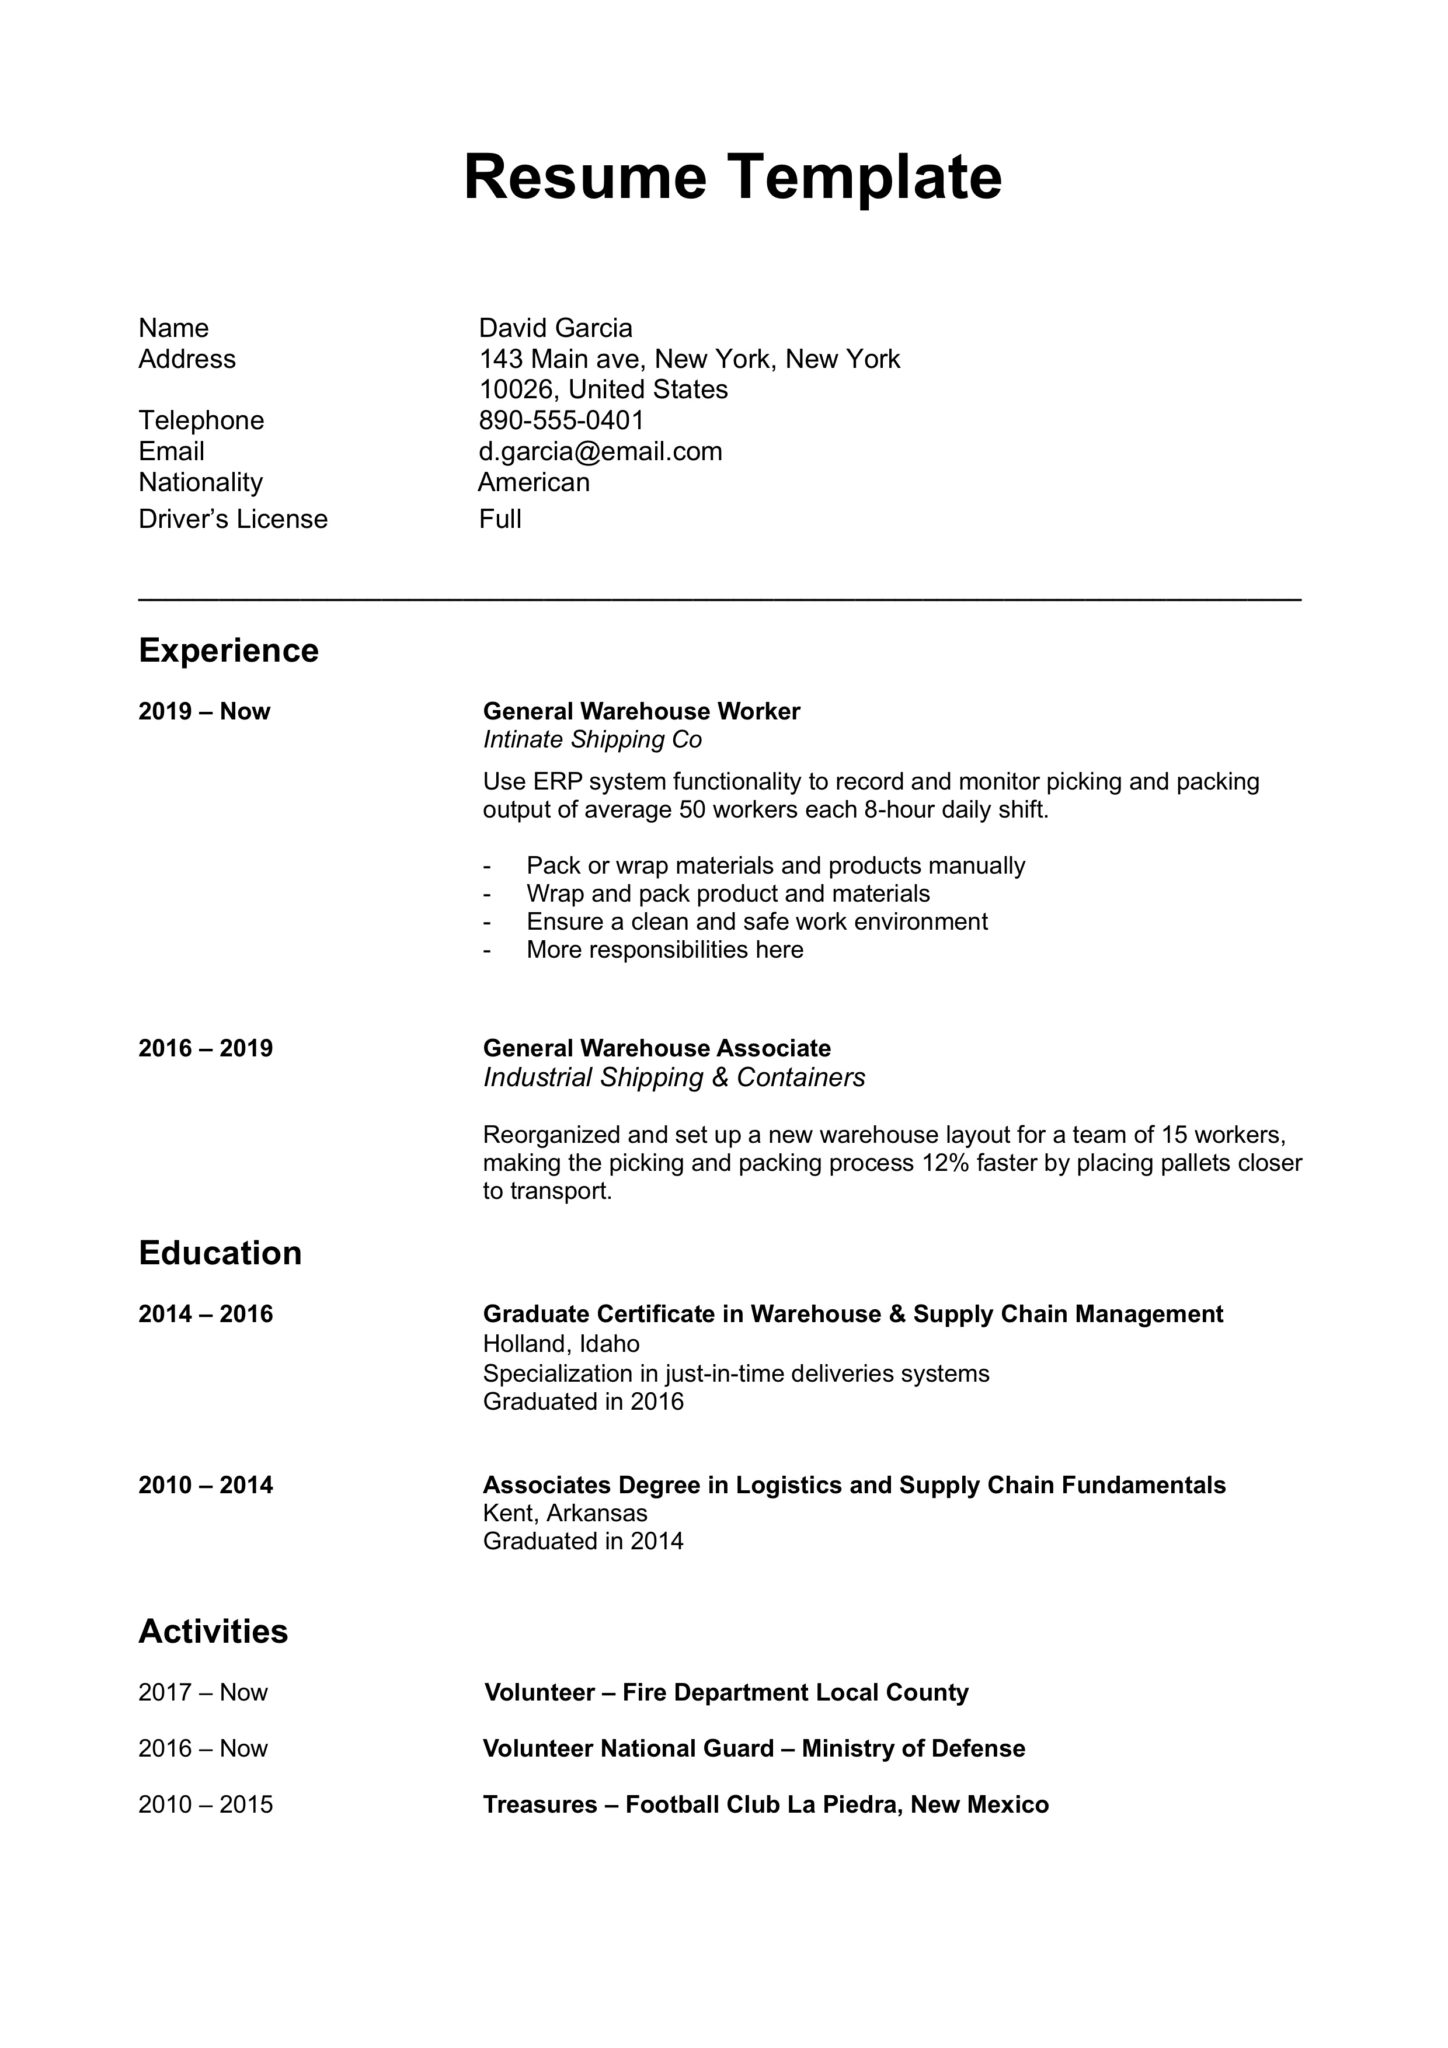 Free Resume Microsoft Word Template from 196034-584727-raikfcquaxqncofqfm.stackpathdns.com